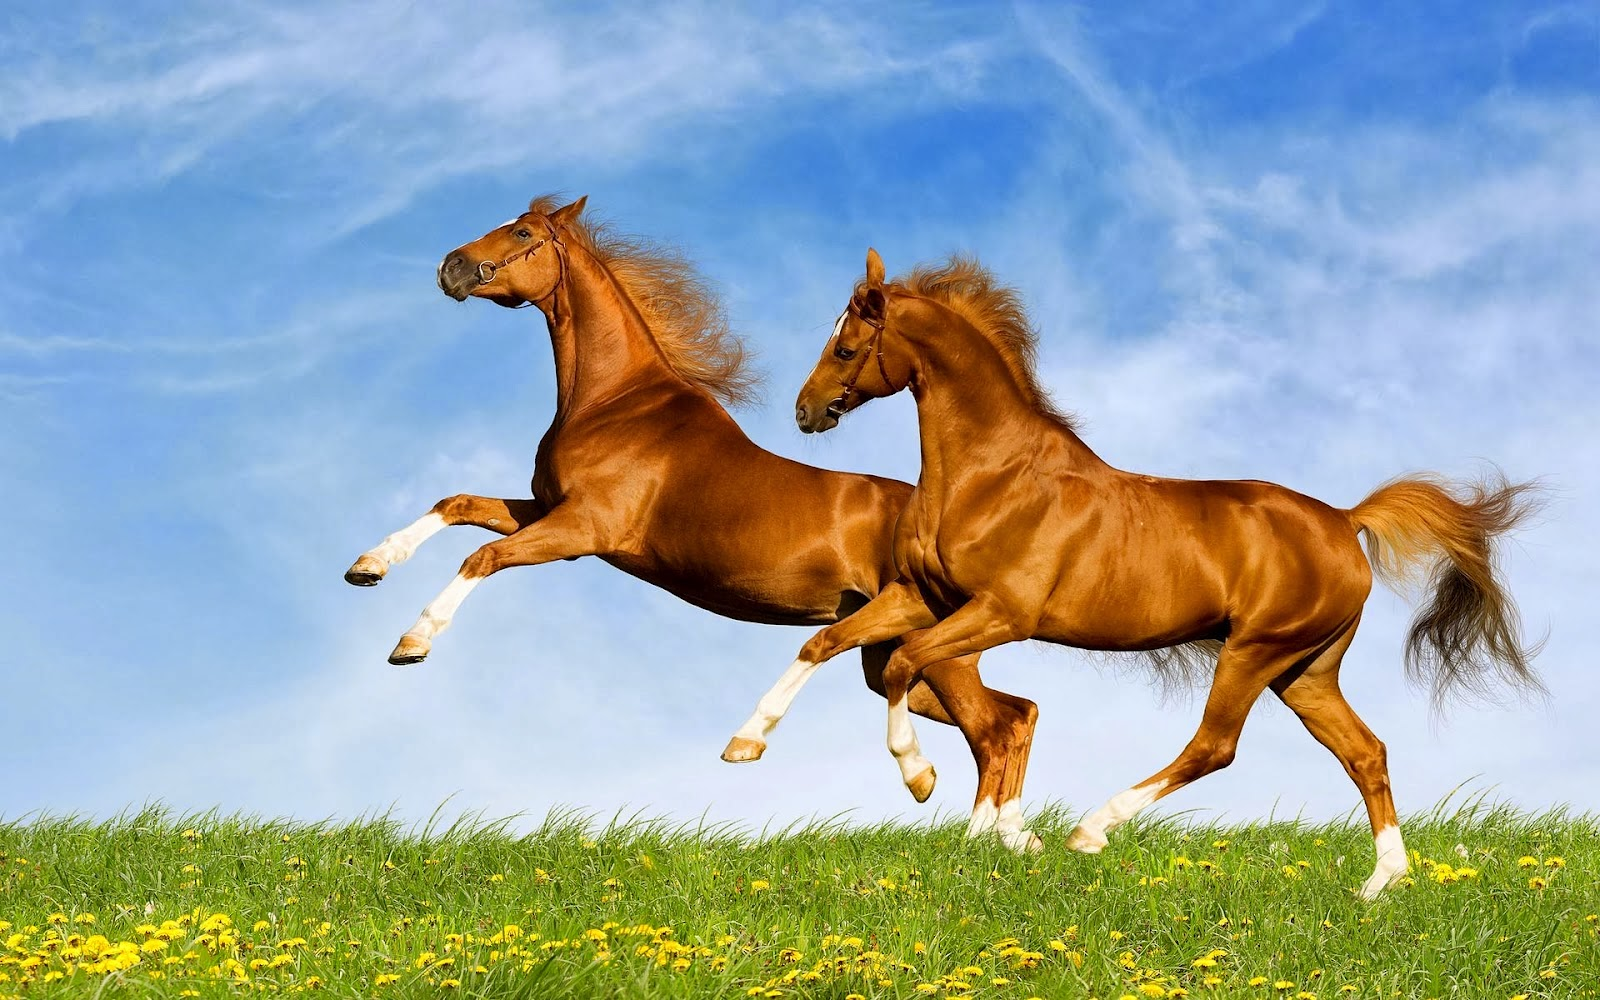 Download   Wallpaper Horse Couple - horse+wallpapers+hd+(11)  Snapshot_447988.jpg